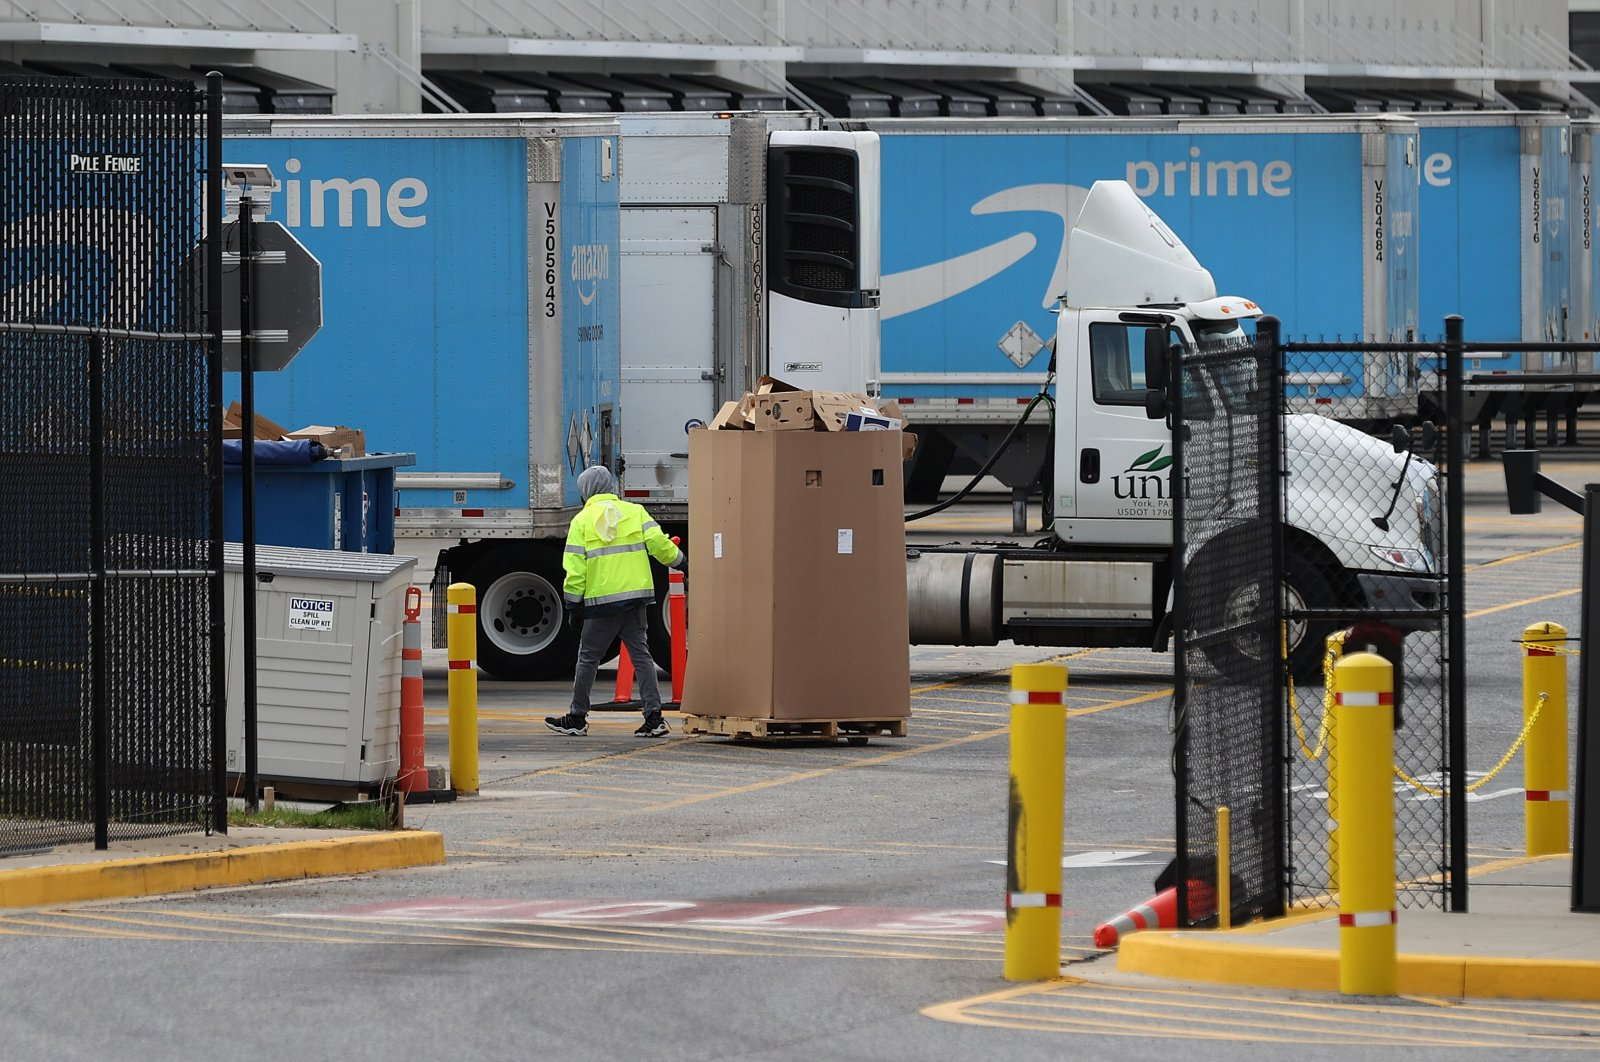 A worker moves boxes at the 1.2 million-square-foot BWI2 Amazon Fulfillment Center employing about 2500 workers in the Chesapeake Commerce Center April 14, 2020 in Baltimore, Maryland. (AFP Photo)